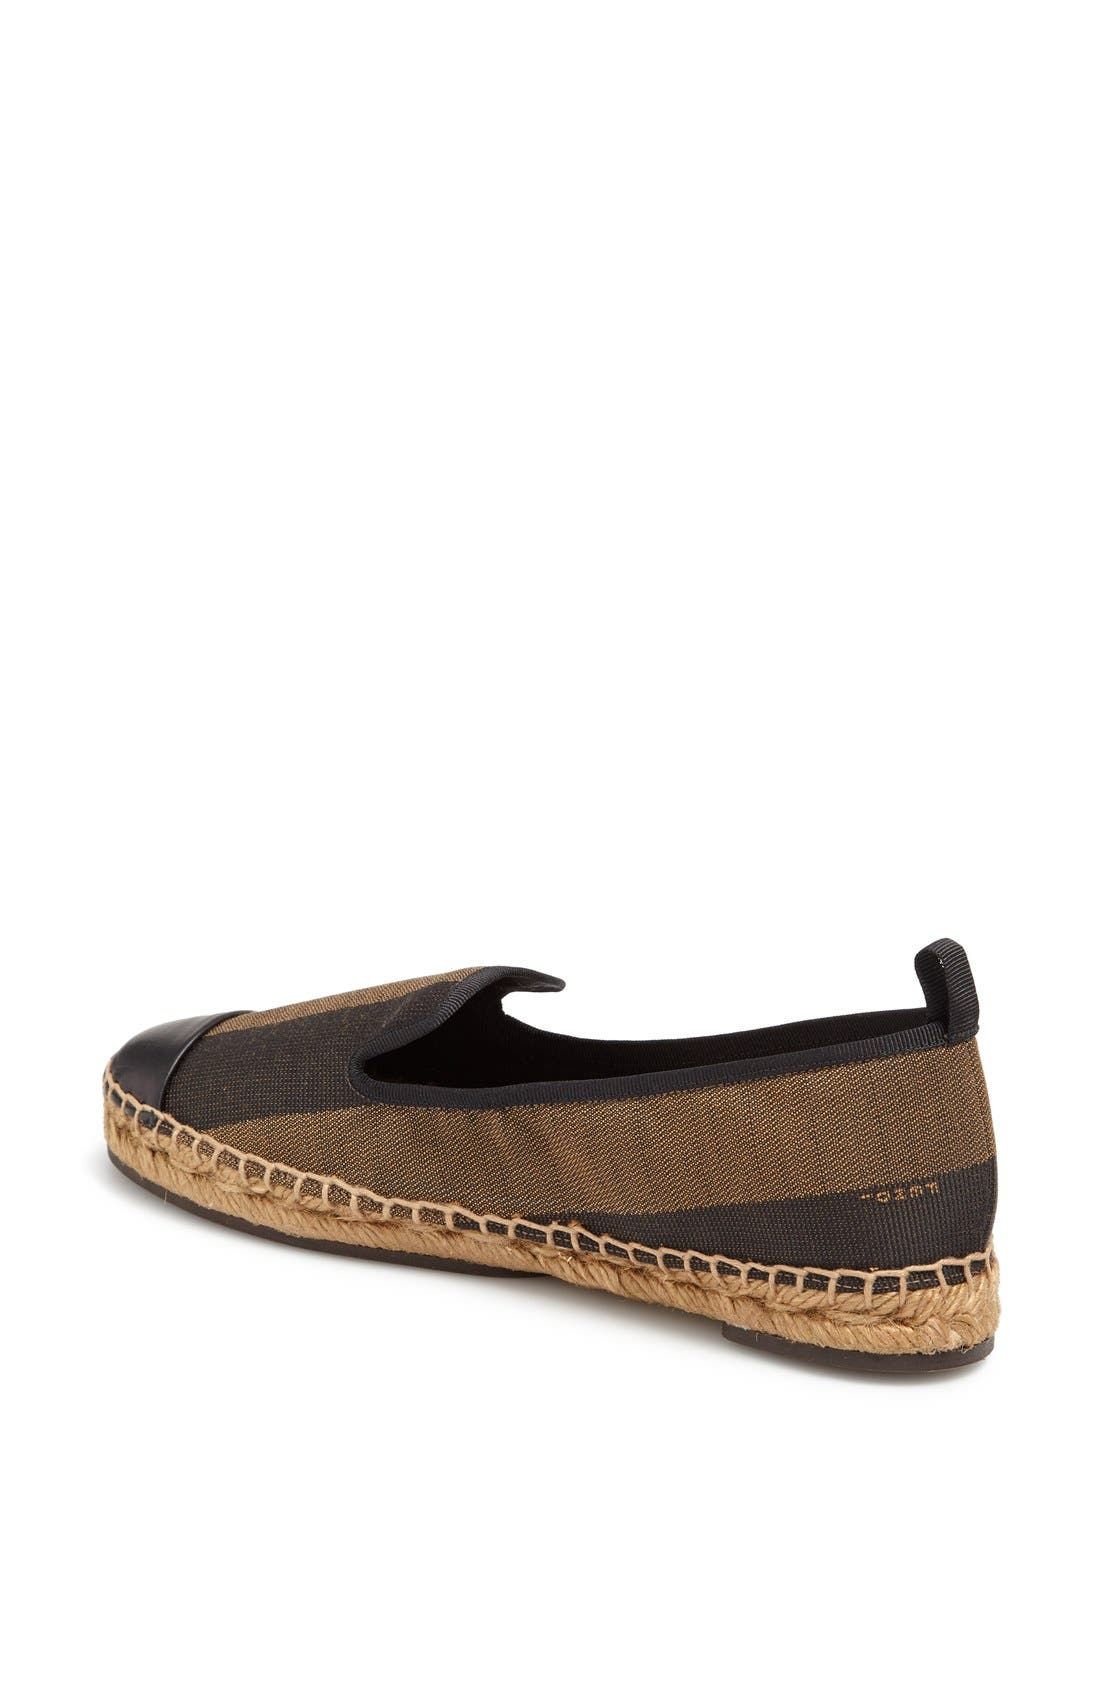 Alternate Image 2  - Fendi 'Junia' Espadrille Flat (Women)